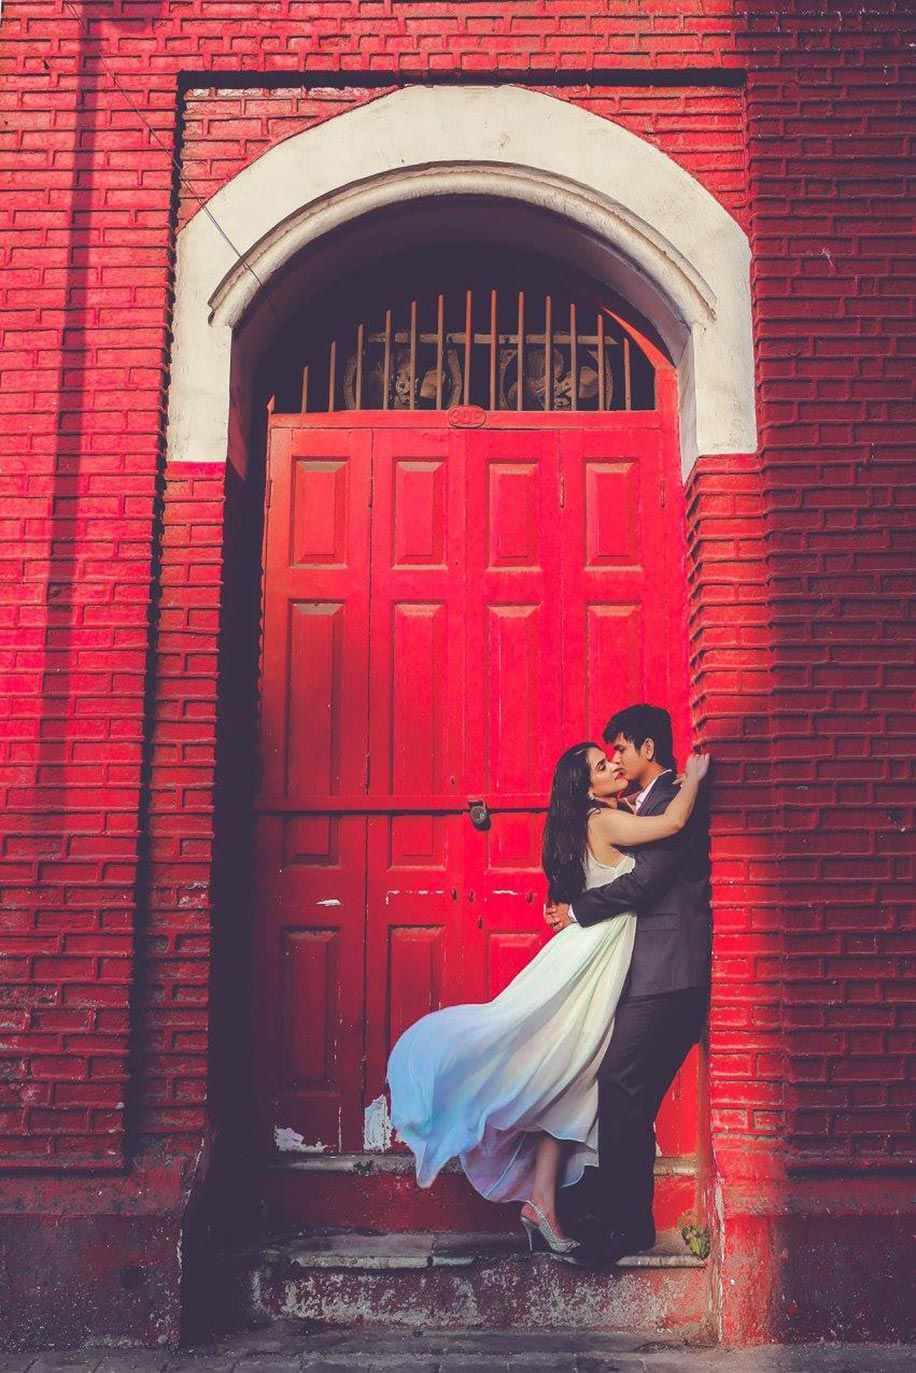 Pre Wedding Shoot - what to and what not to wear - http://www.weddingsutra.com/bride/fashion/3591-pick-the-wardrobe-for-your-pre-wedding-shoot